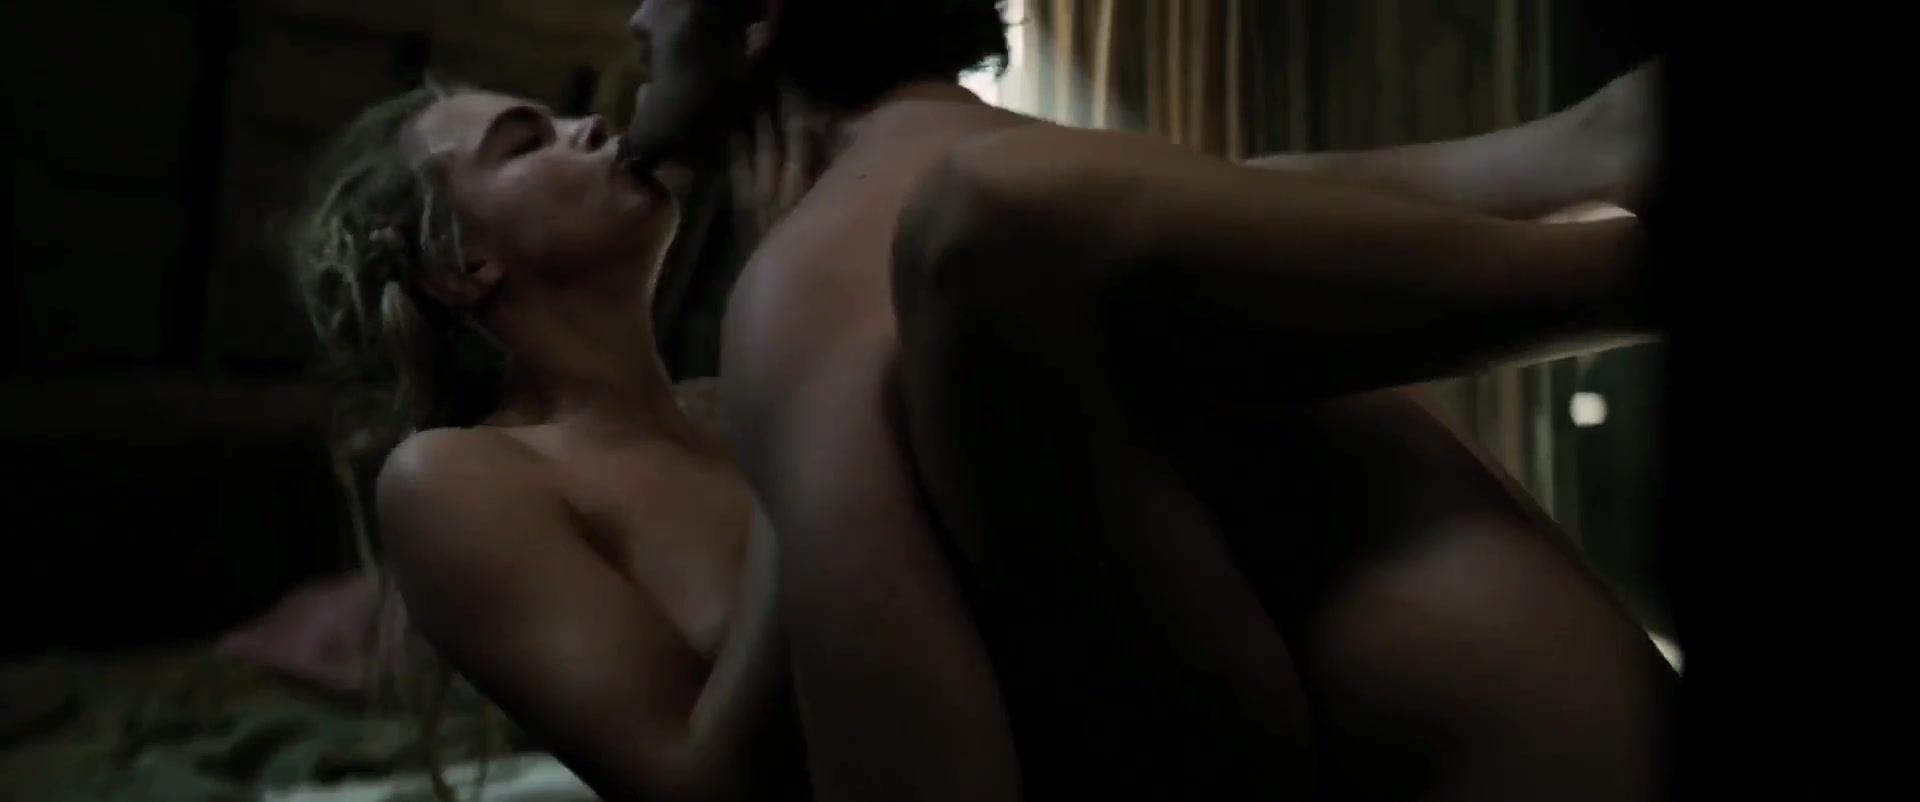 🌷 Sex with girl on bed